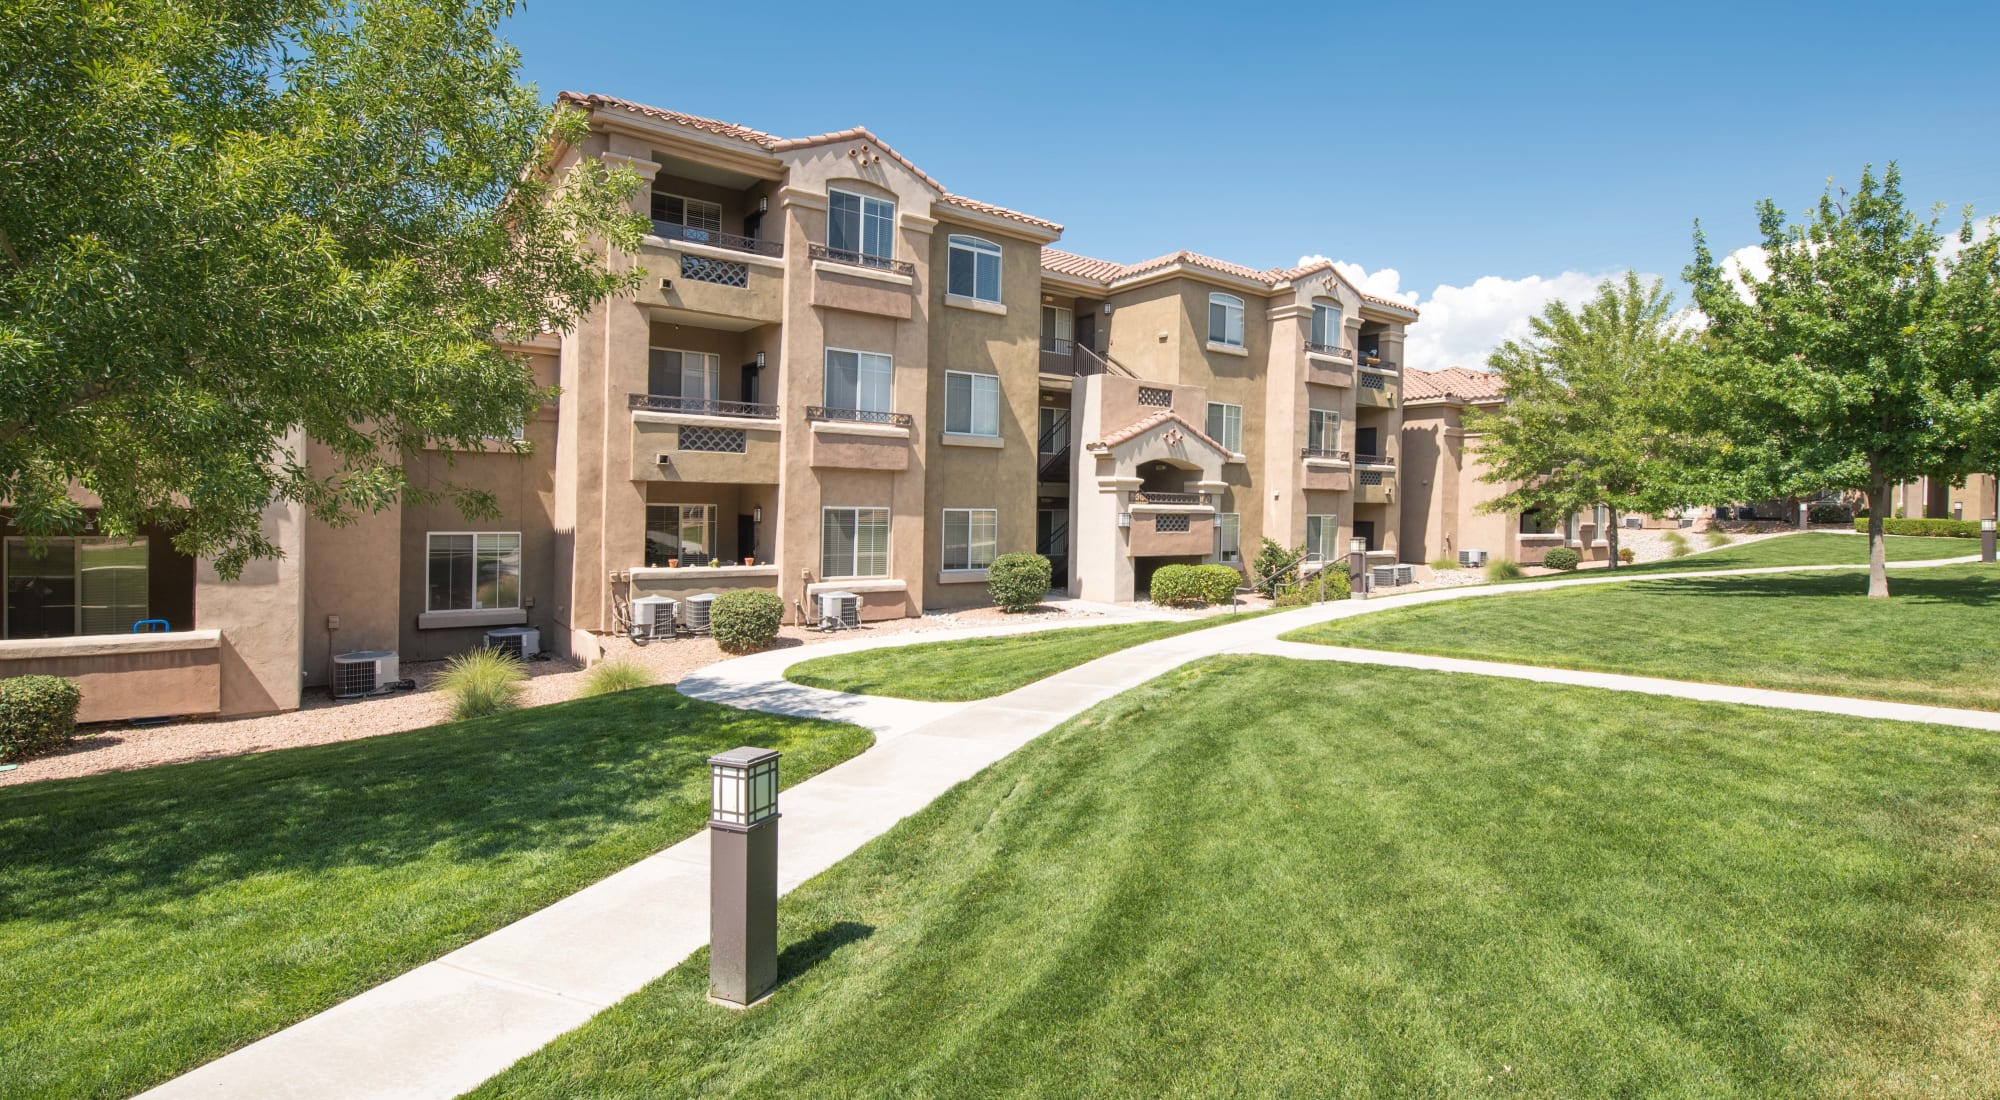 Pet-friendly apartments at Broadstone Towne Center in Albuquerque, New Mexico